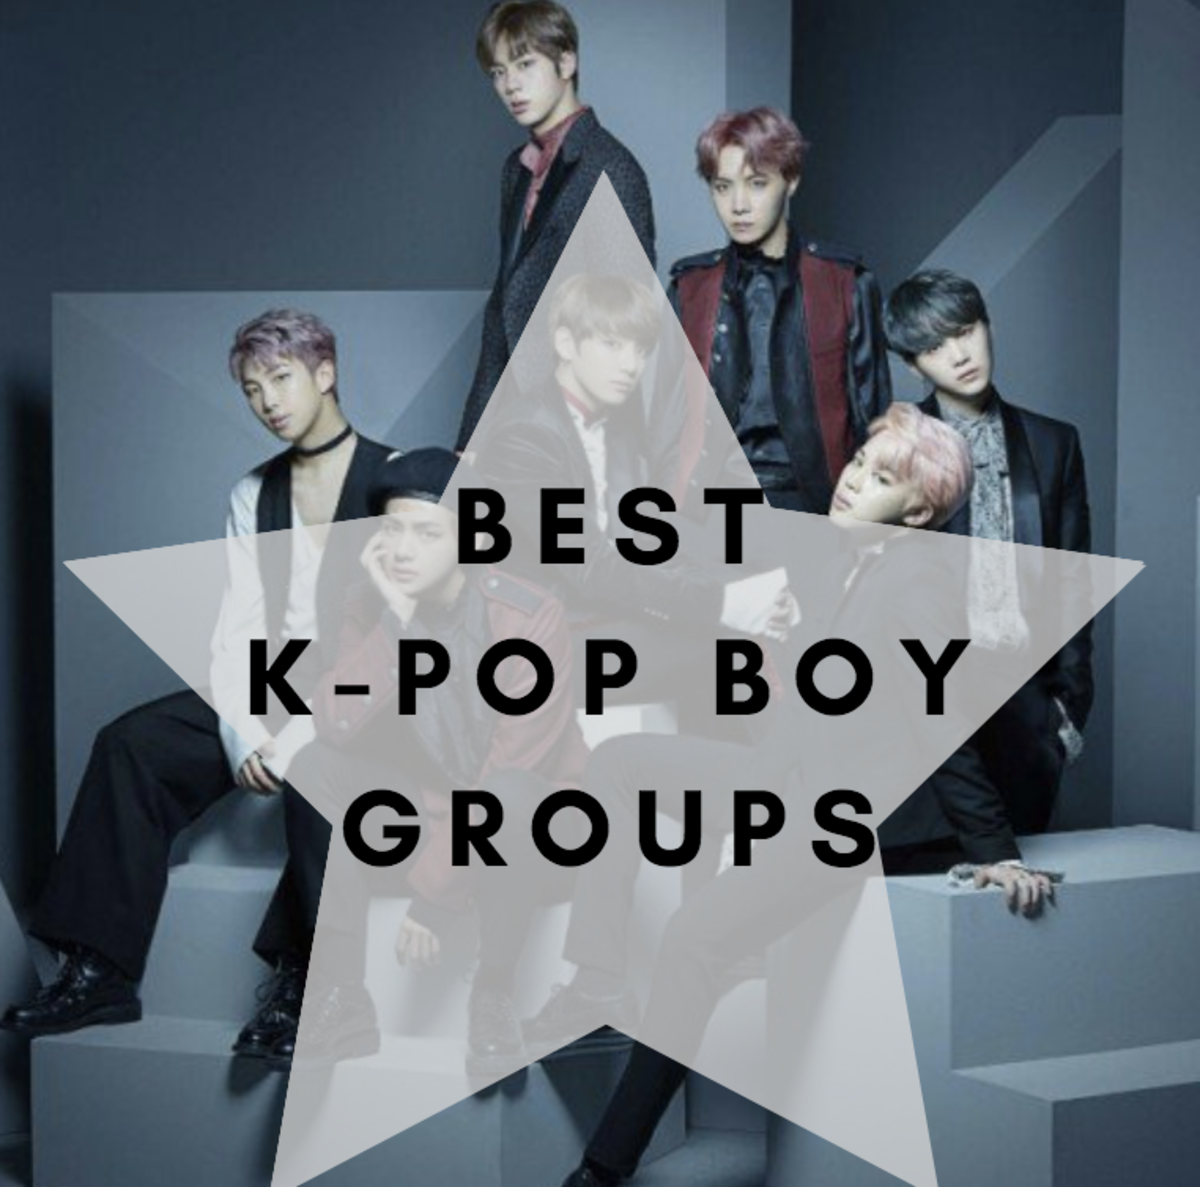 Top 10 Best K-Pop Boy Groups of 2017 and 2018 | Spinditty